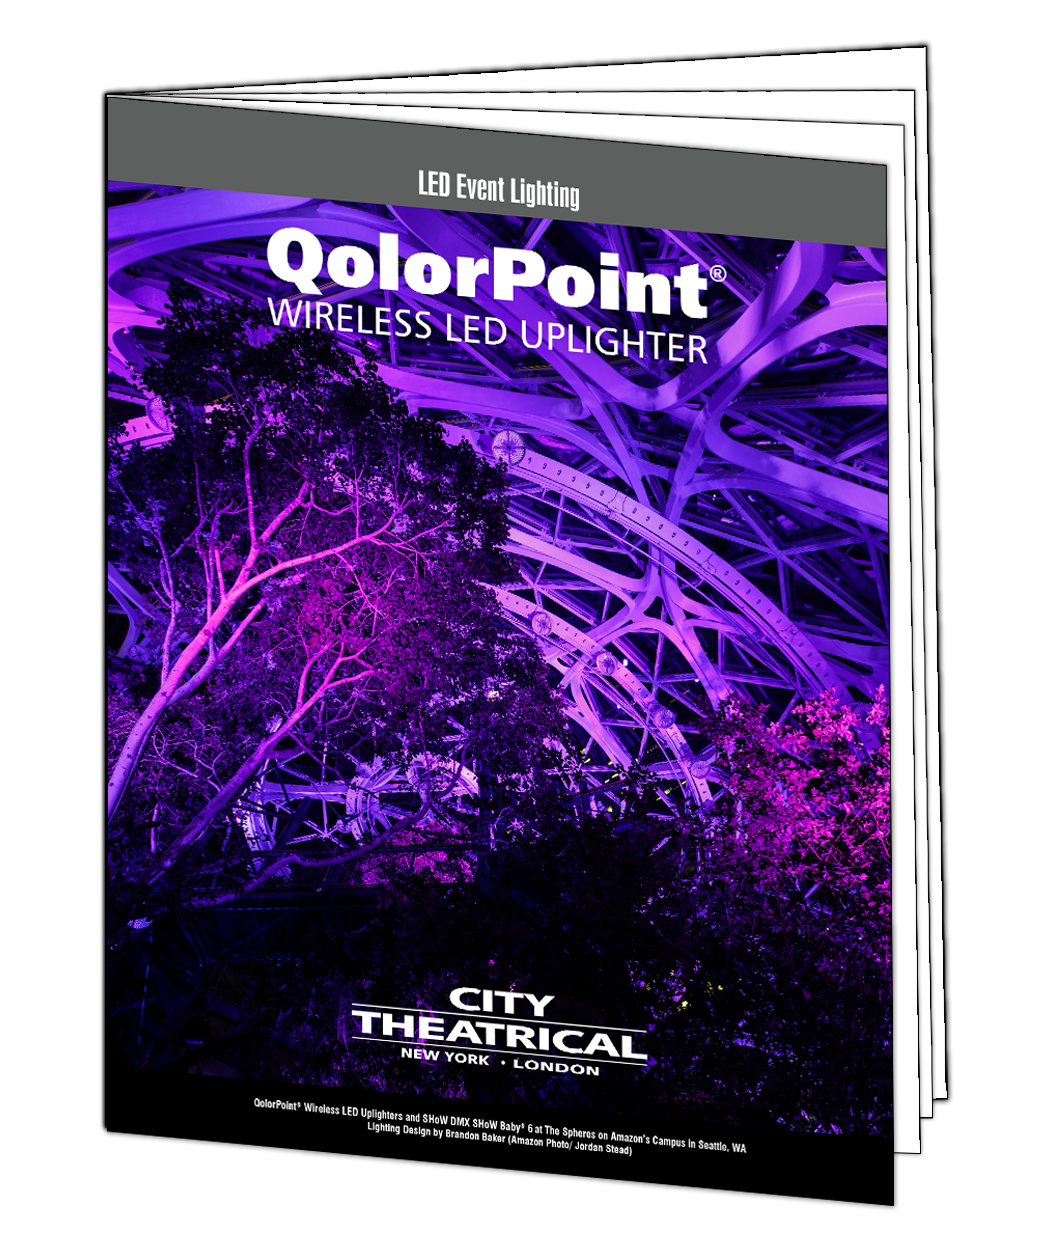 QolorPoint LED Event Lighting Brochure